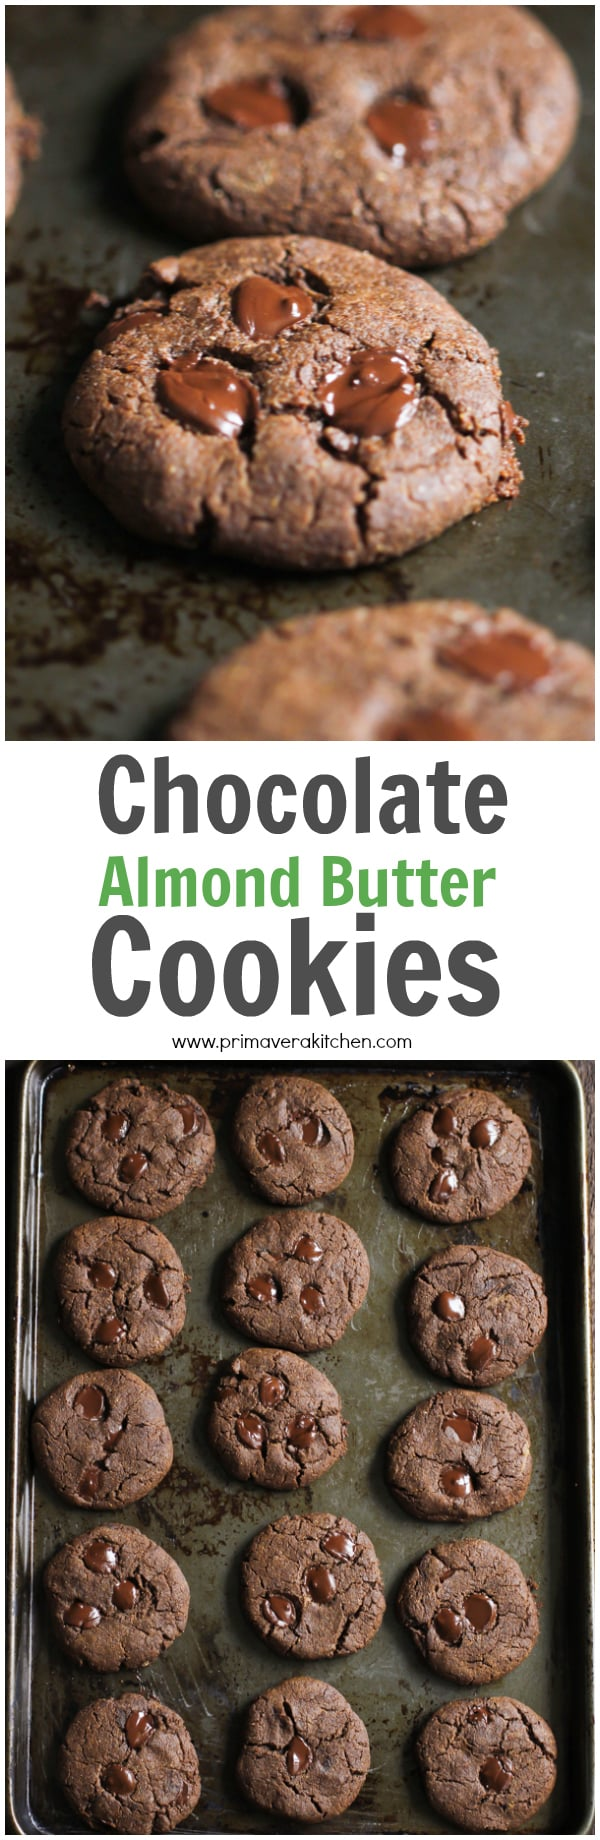 Chocolate Almond Butter Cookies - These gluten-free and Paleo Chocolate Almond Butter Cookies are made with few simple ingredients and it's ready in 15 minutes. | www.primaverakitchen.com